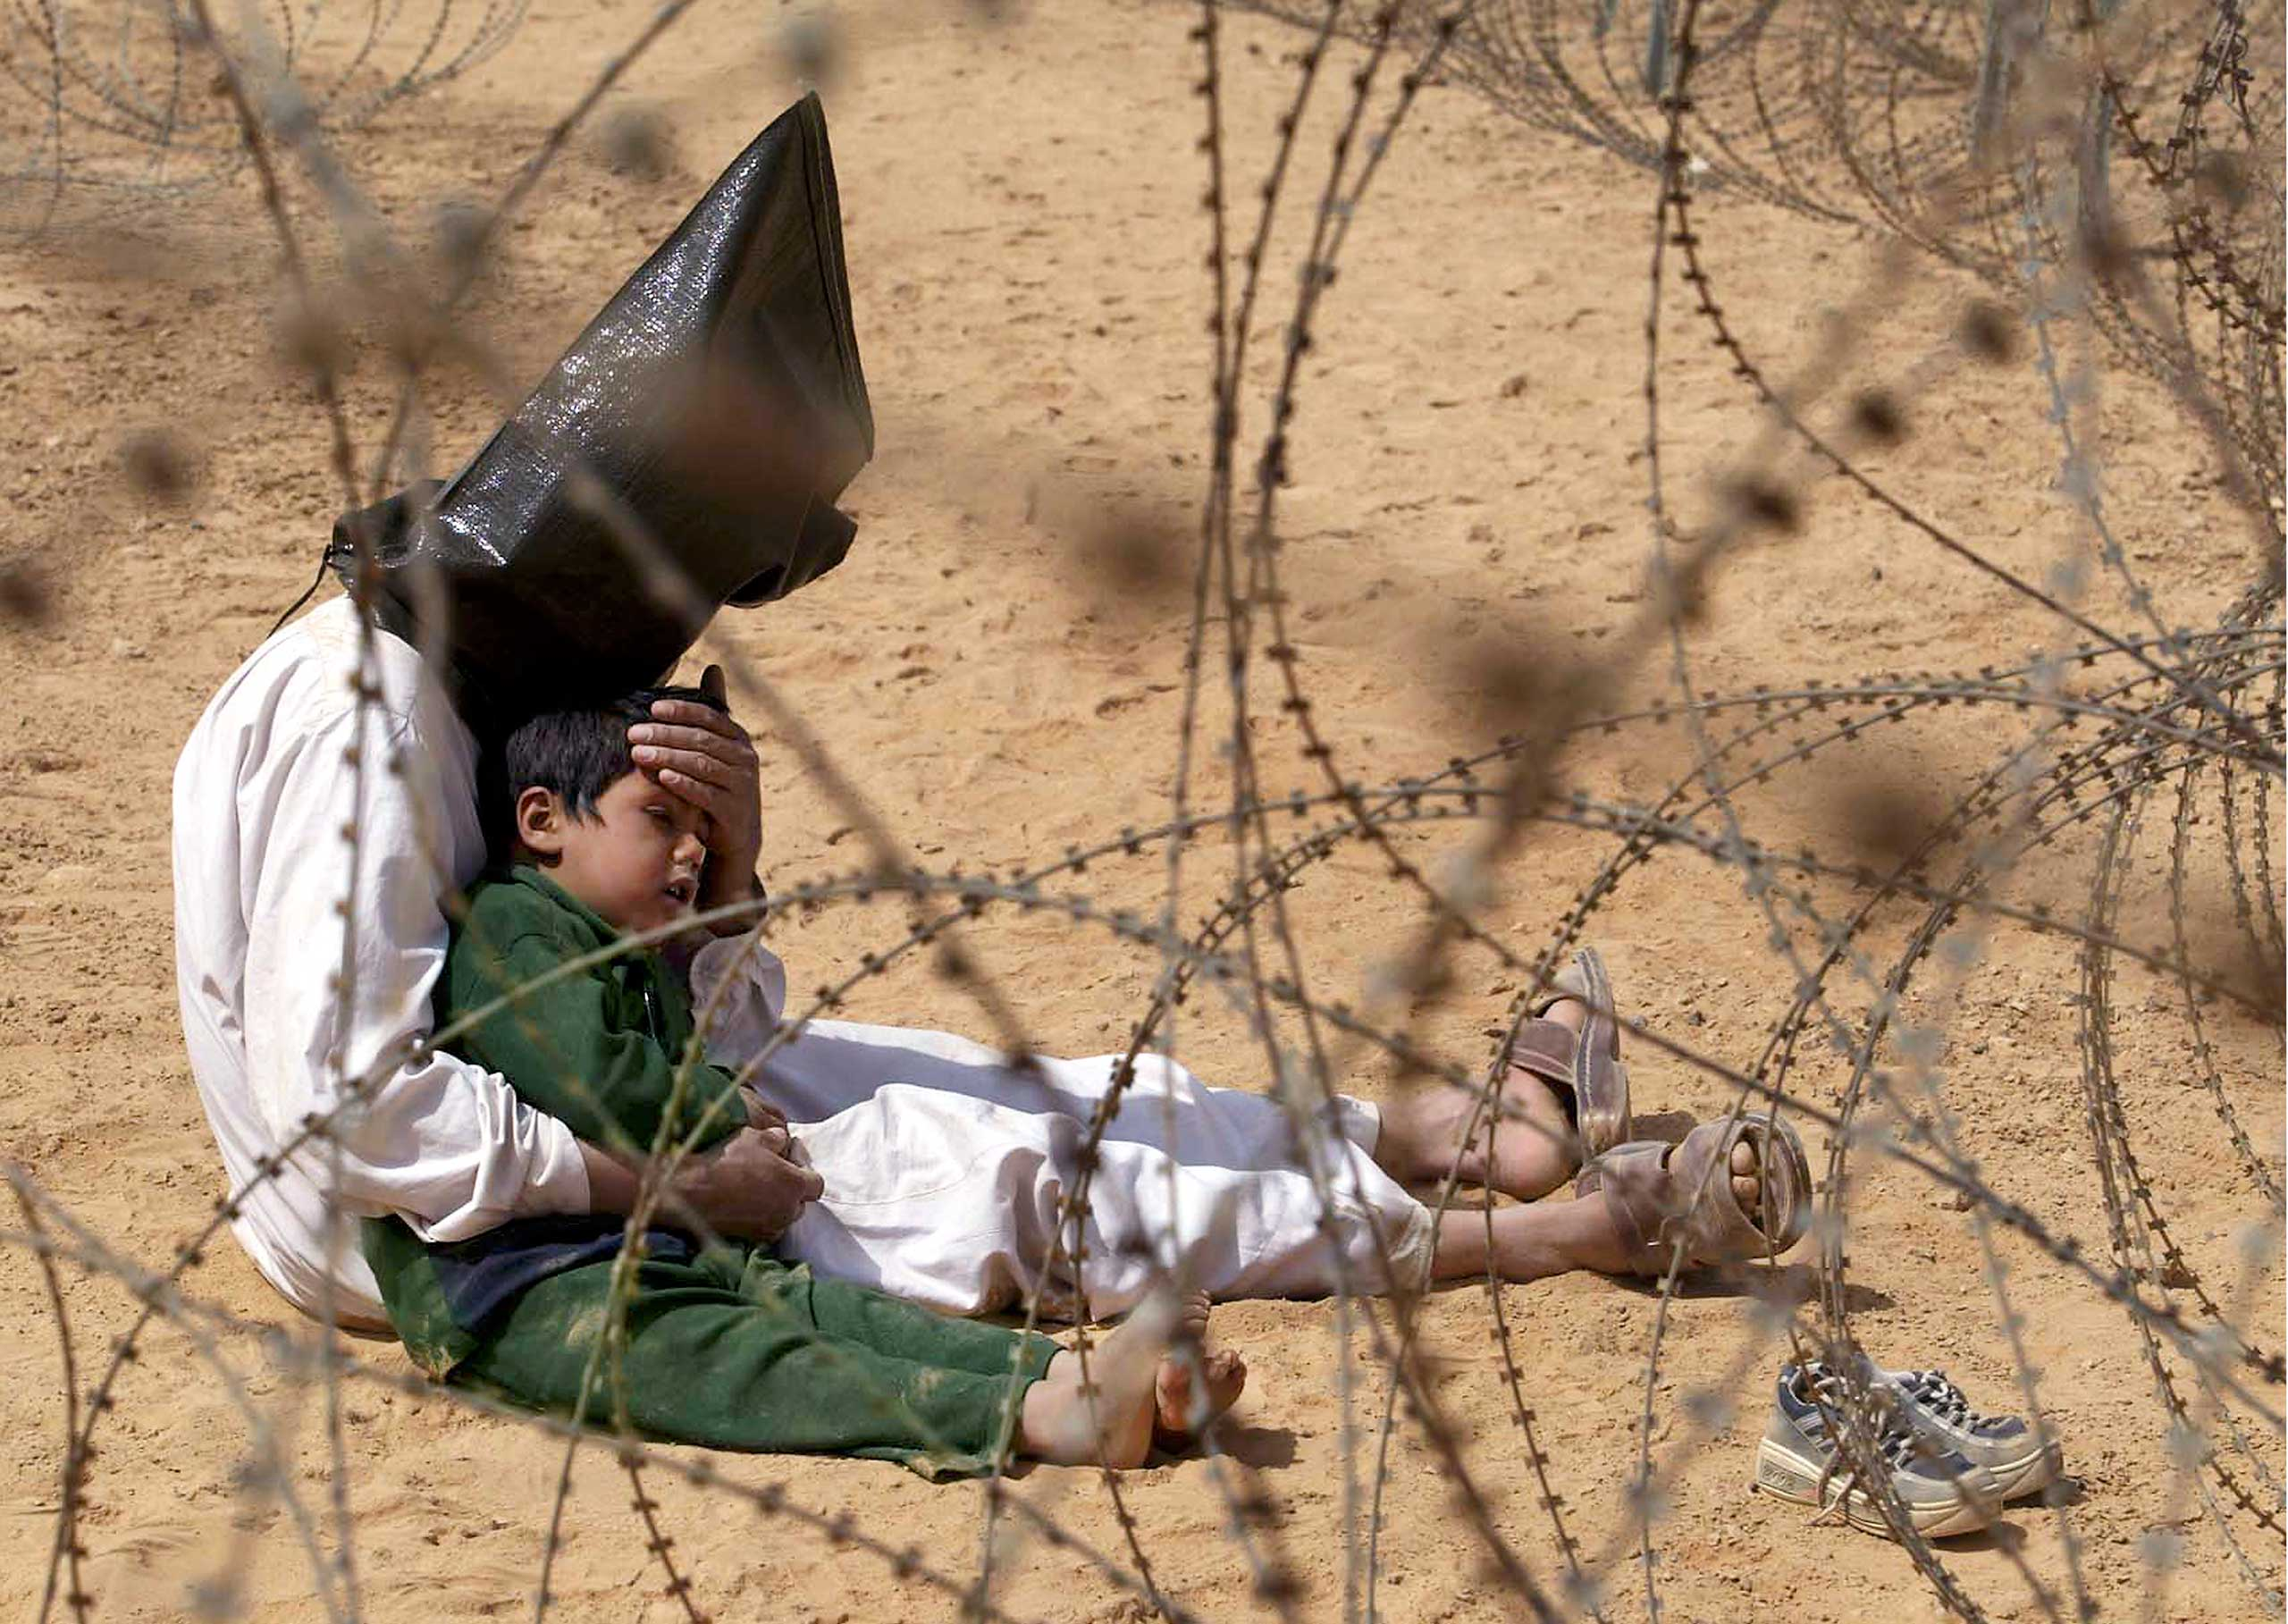 <b>Jean-Marc Bouju, March 31, 2003                                   </b>                                   Ten years ago. I doubt the desert remembers the barbed wire and hooded, shackled prisoners. Does it at least remember the screams of a boy clinging to a father who mumbled words of comfort from beneath a black sandbag? I hope the desert, too, felt relieved when an American soldier cut off the plastic handcuffs, and the man could finally embrace his child. But this desert has seen so much since the beginning of civilization that I do not think this was a remarkable day. This is not even a particularly noticeable war in the context of Iraq's 5,000 years of history.                                   But for me, this moment endures. The whole scene was surreal. This image was one of the last of my career. Three months later, I was disabled in a car accident. My daughter was the same age as the child in this photo. I look at her today and wonder what happened to that boy. I wonder why we were at war. What was accomplished? Ten years. An army of dead, wounded and mentally destroyed people. Maybe they, too, are wondering: why? I remember, and I wonder.